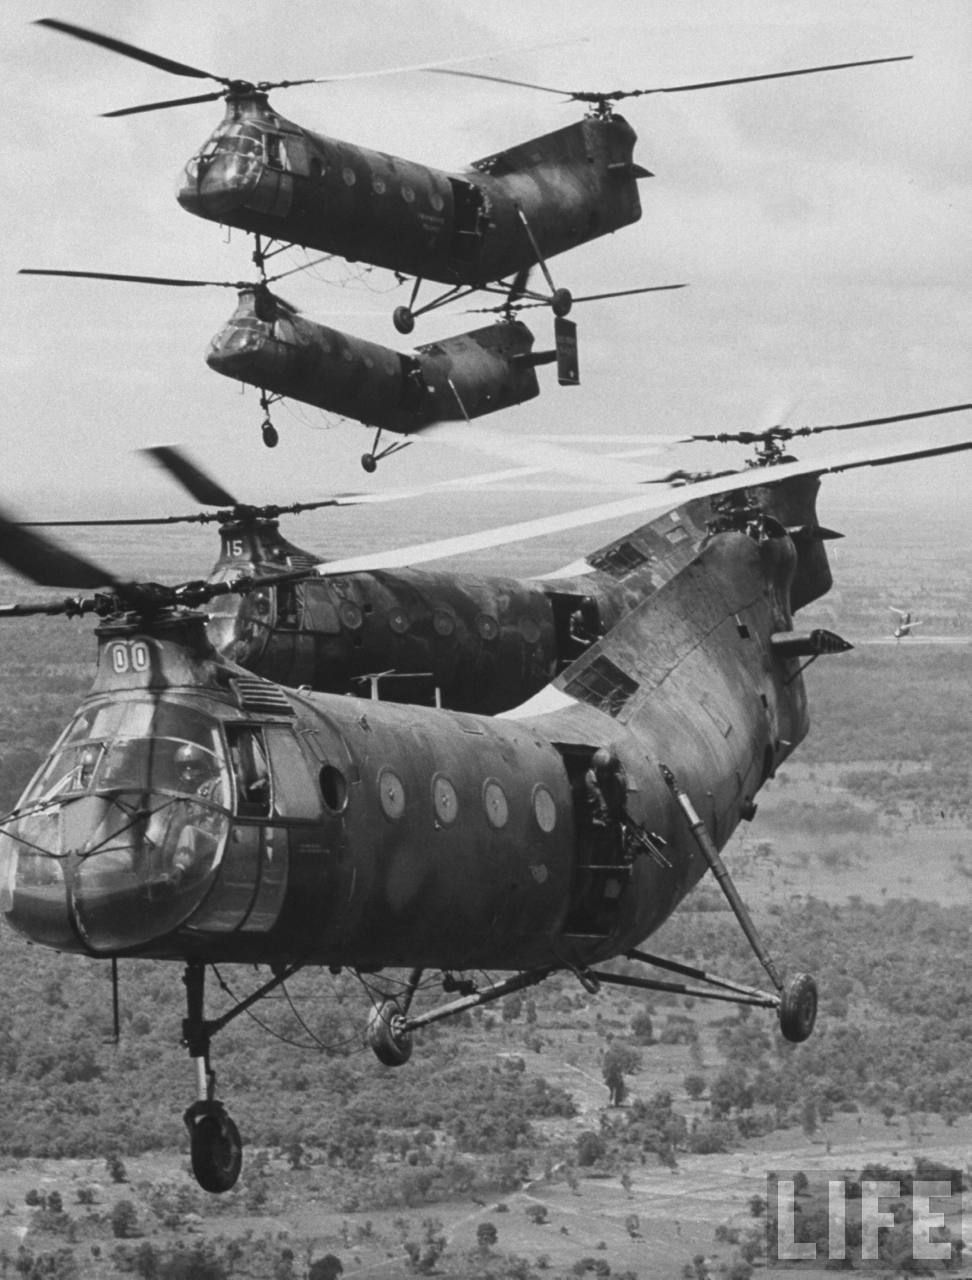 A flight of U.S. Army CH-21C Shawnee helicopters over South Vietnam, 1962.